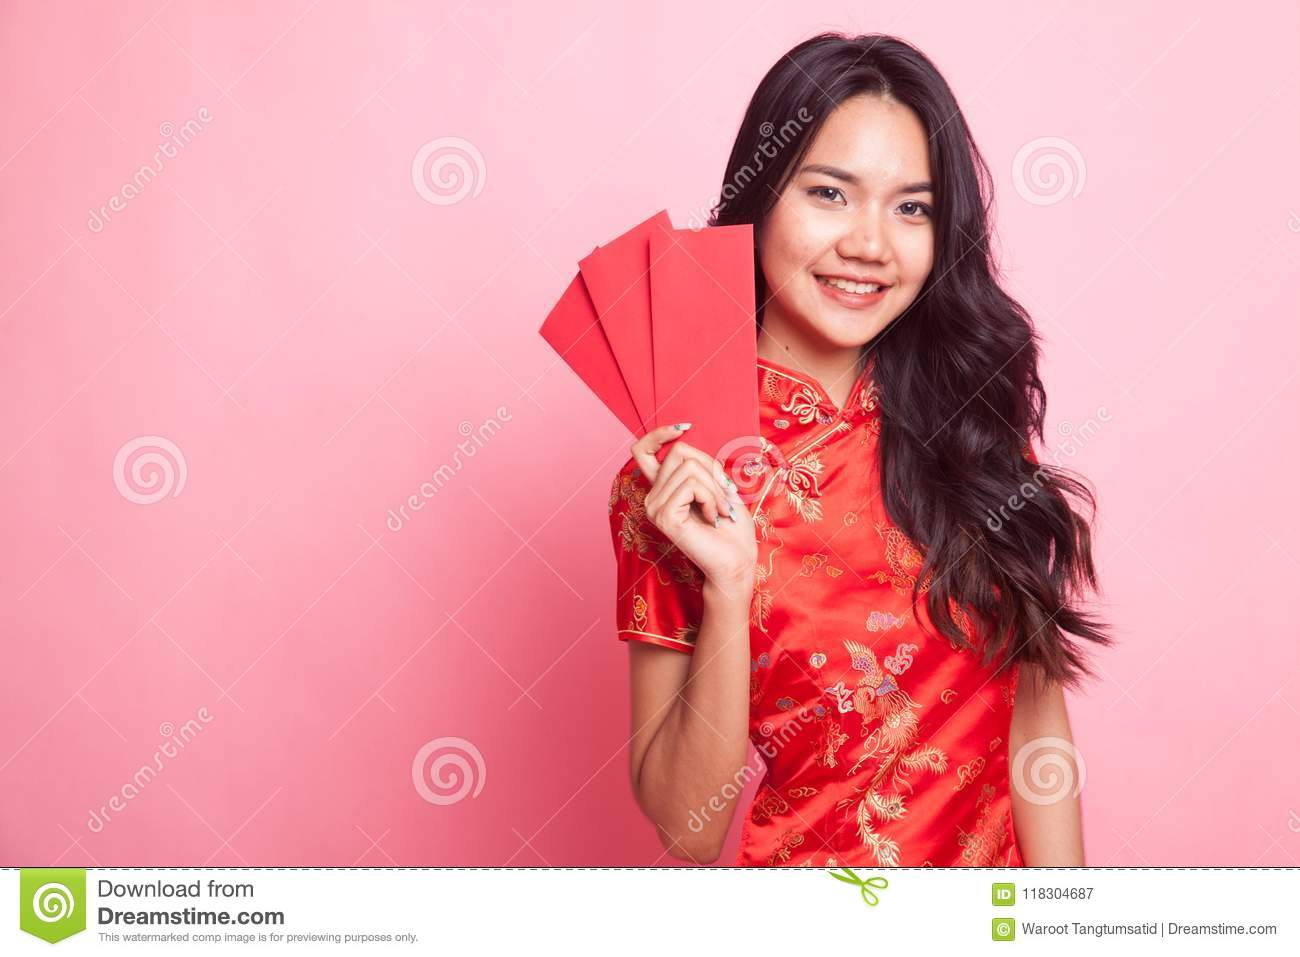 cb1d83093 Royalty-Free Stock Photo. Cute Asian girl in chinese red cheongsam dress  with red envelope